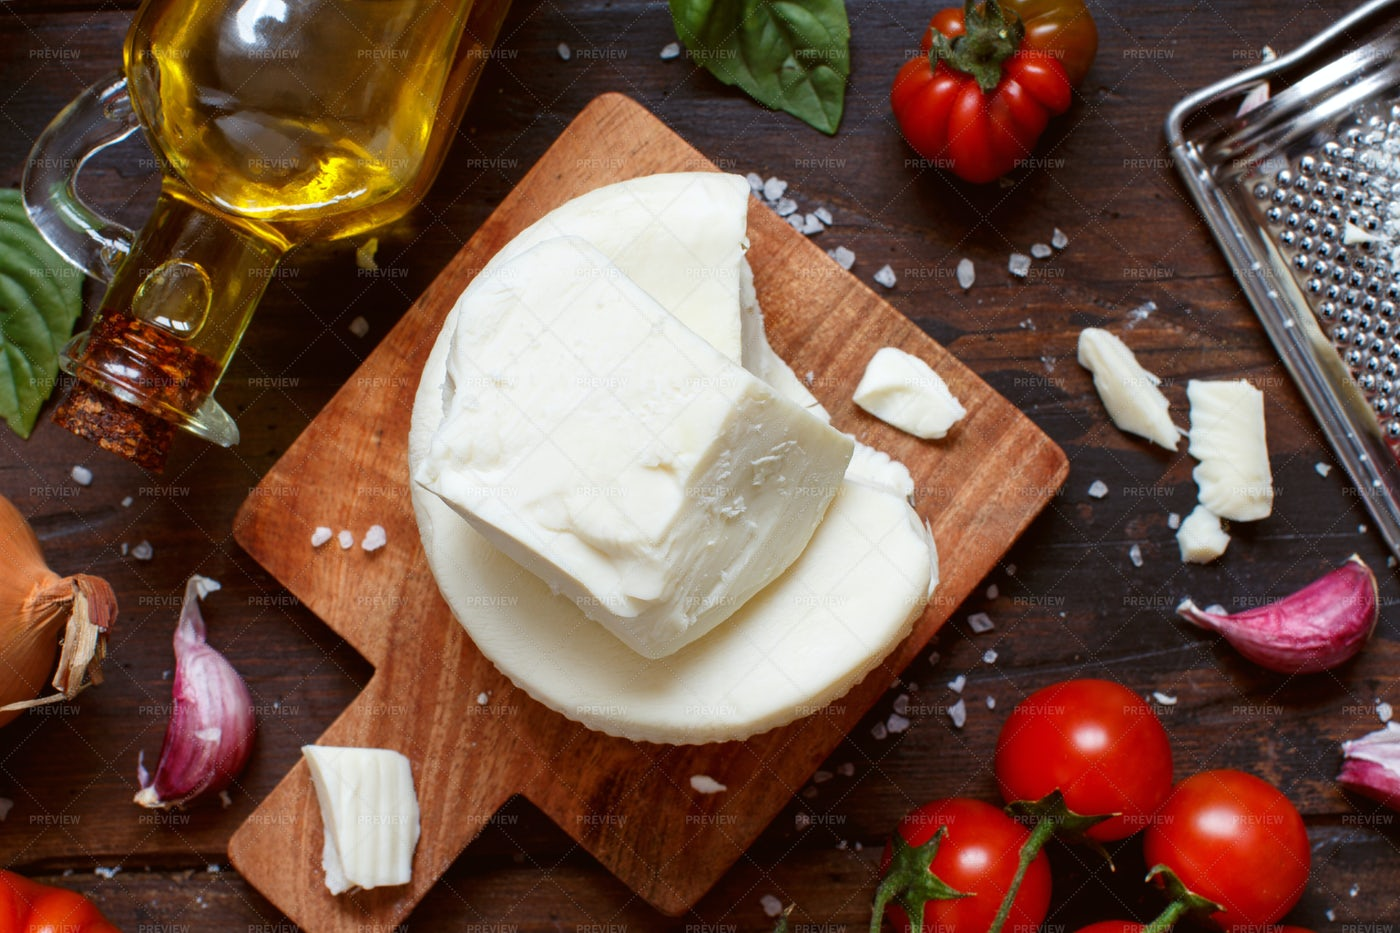 Cacioricotta Cheese And Vegetables: Stock Photos